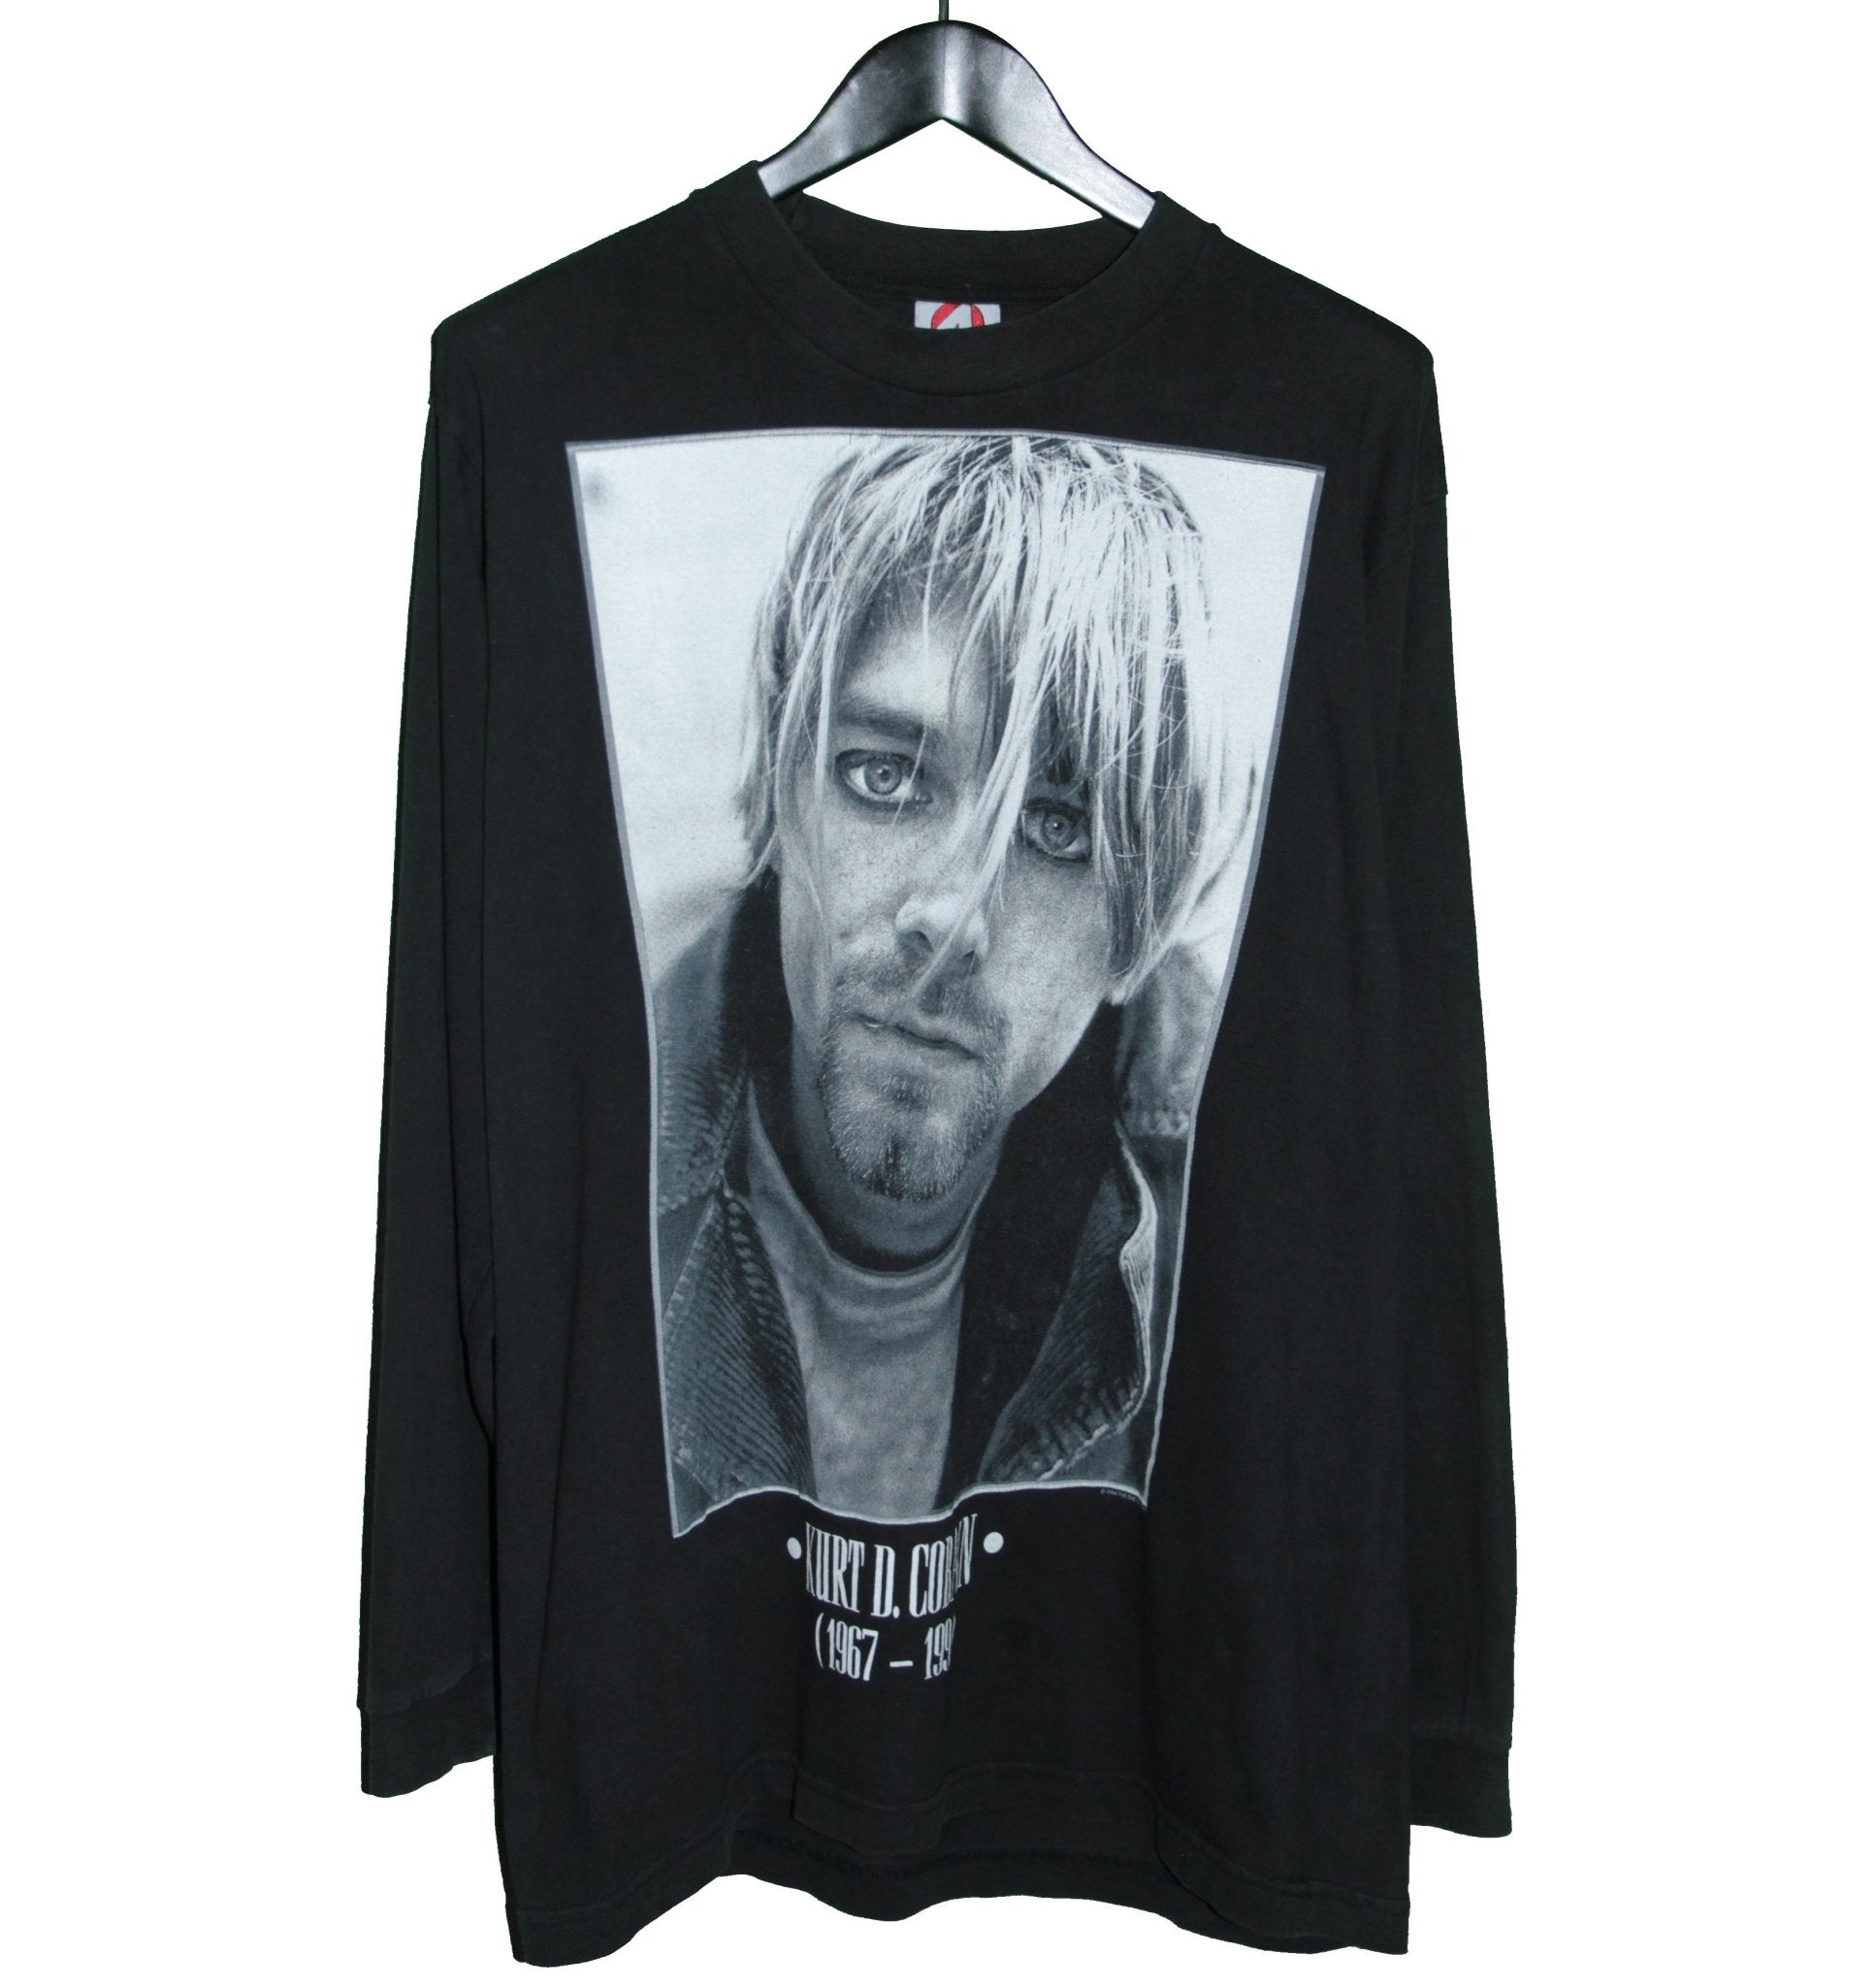 Kurt Cobain 1994 Memorial Longsleeve Shirt - Faded AU